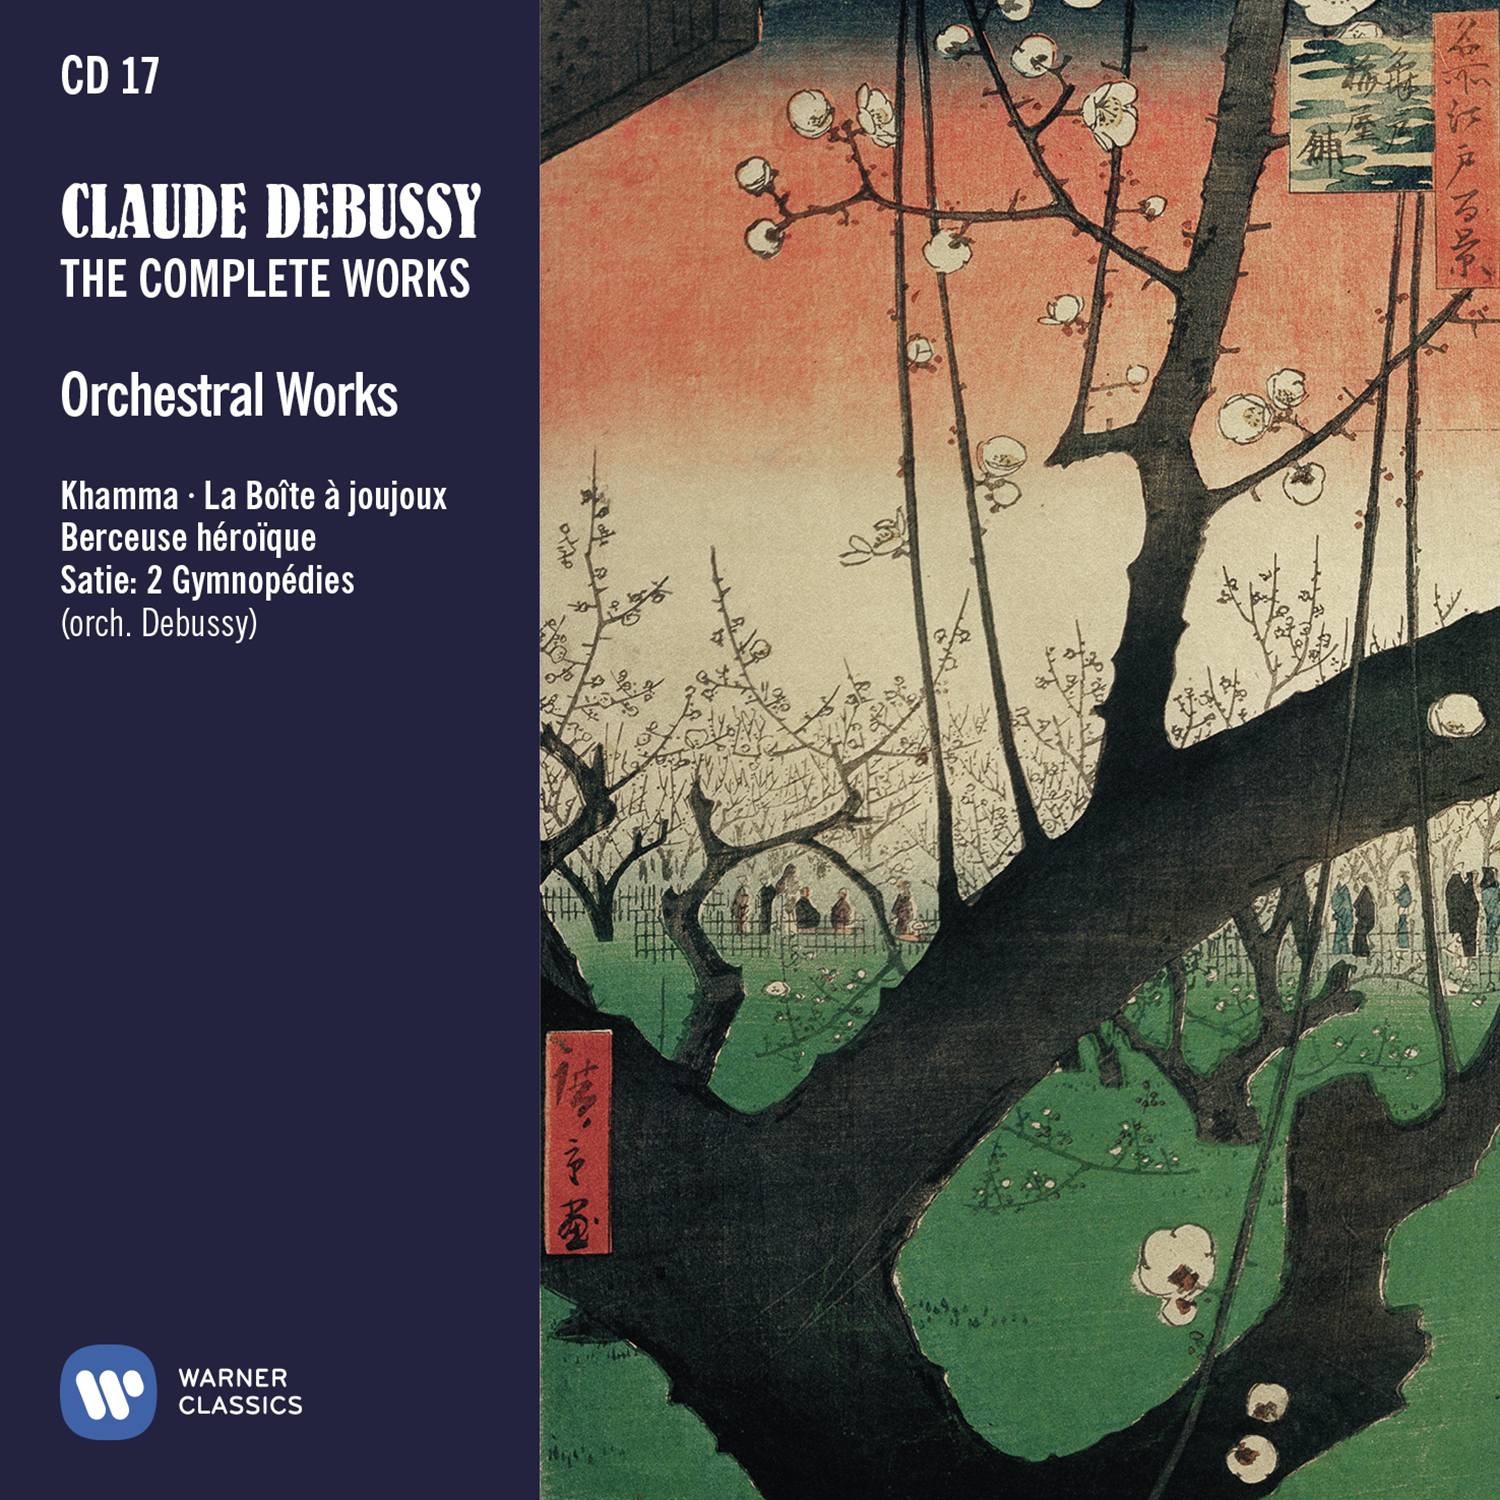 Debussy The complete works - Cover wallet CD17.jpg